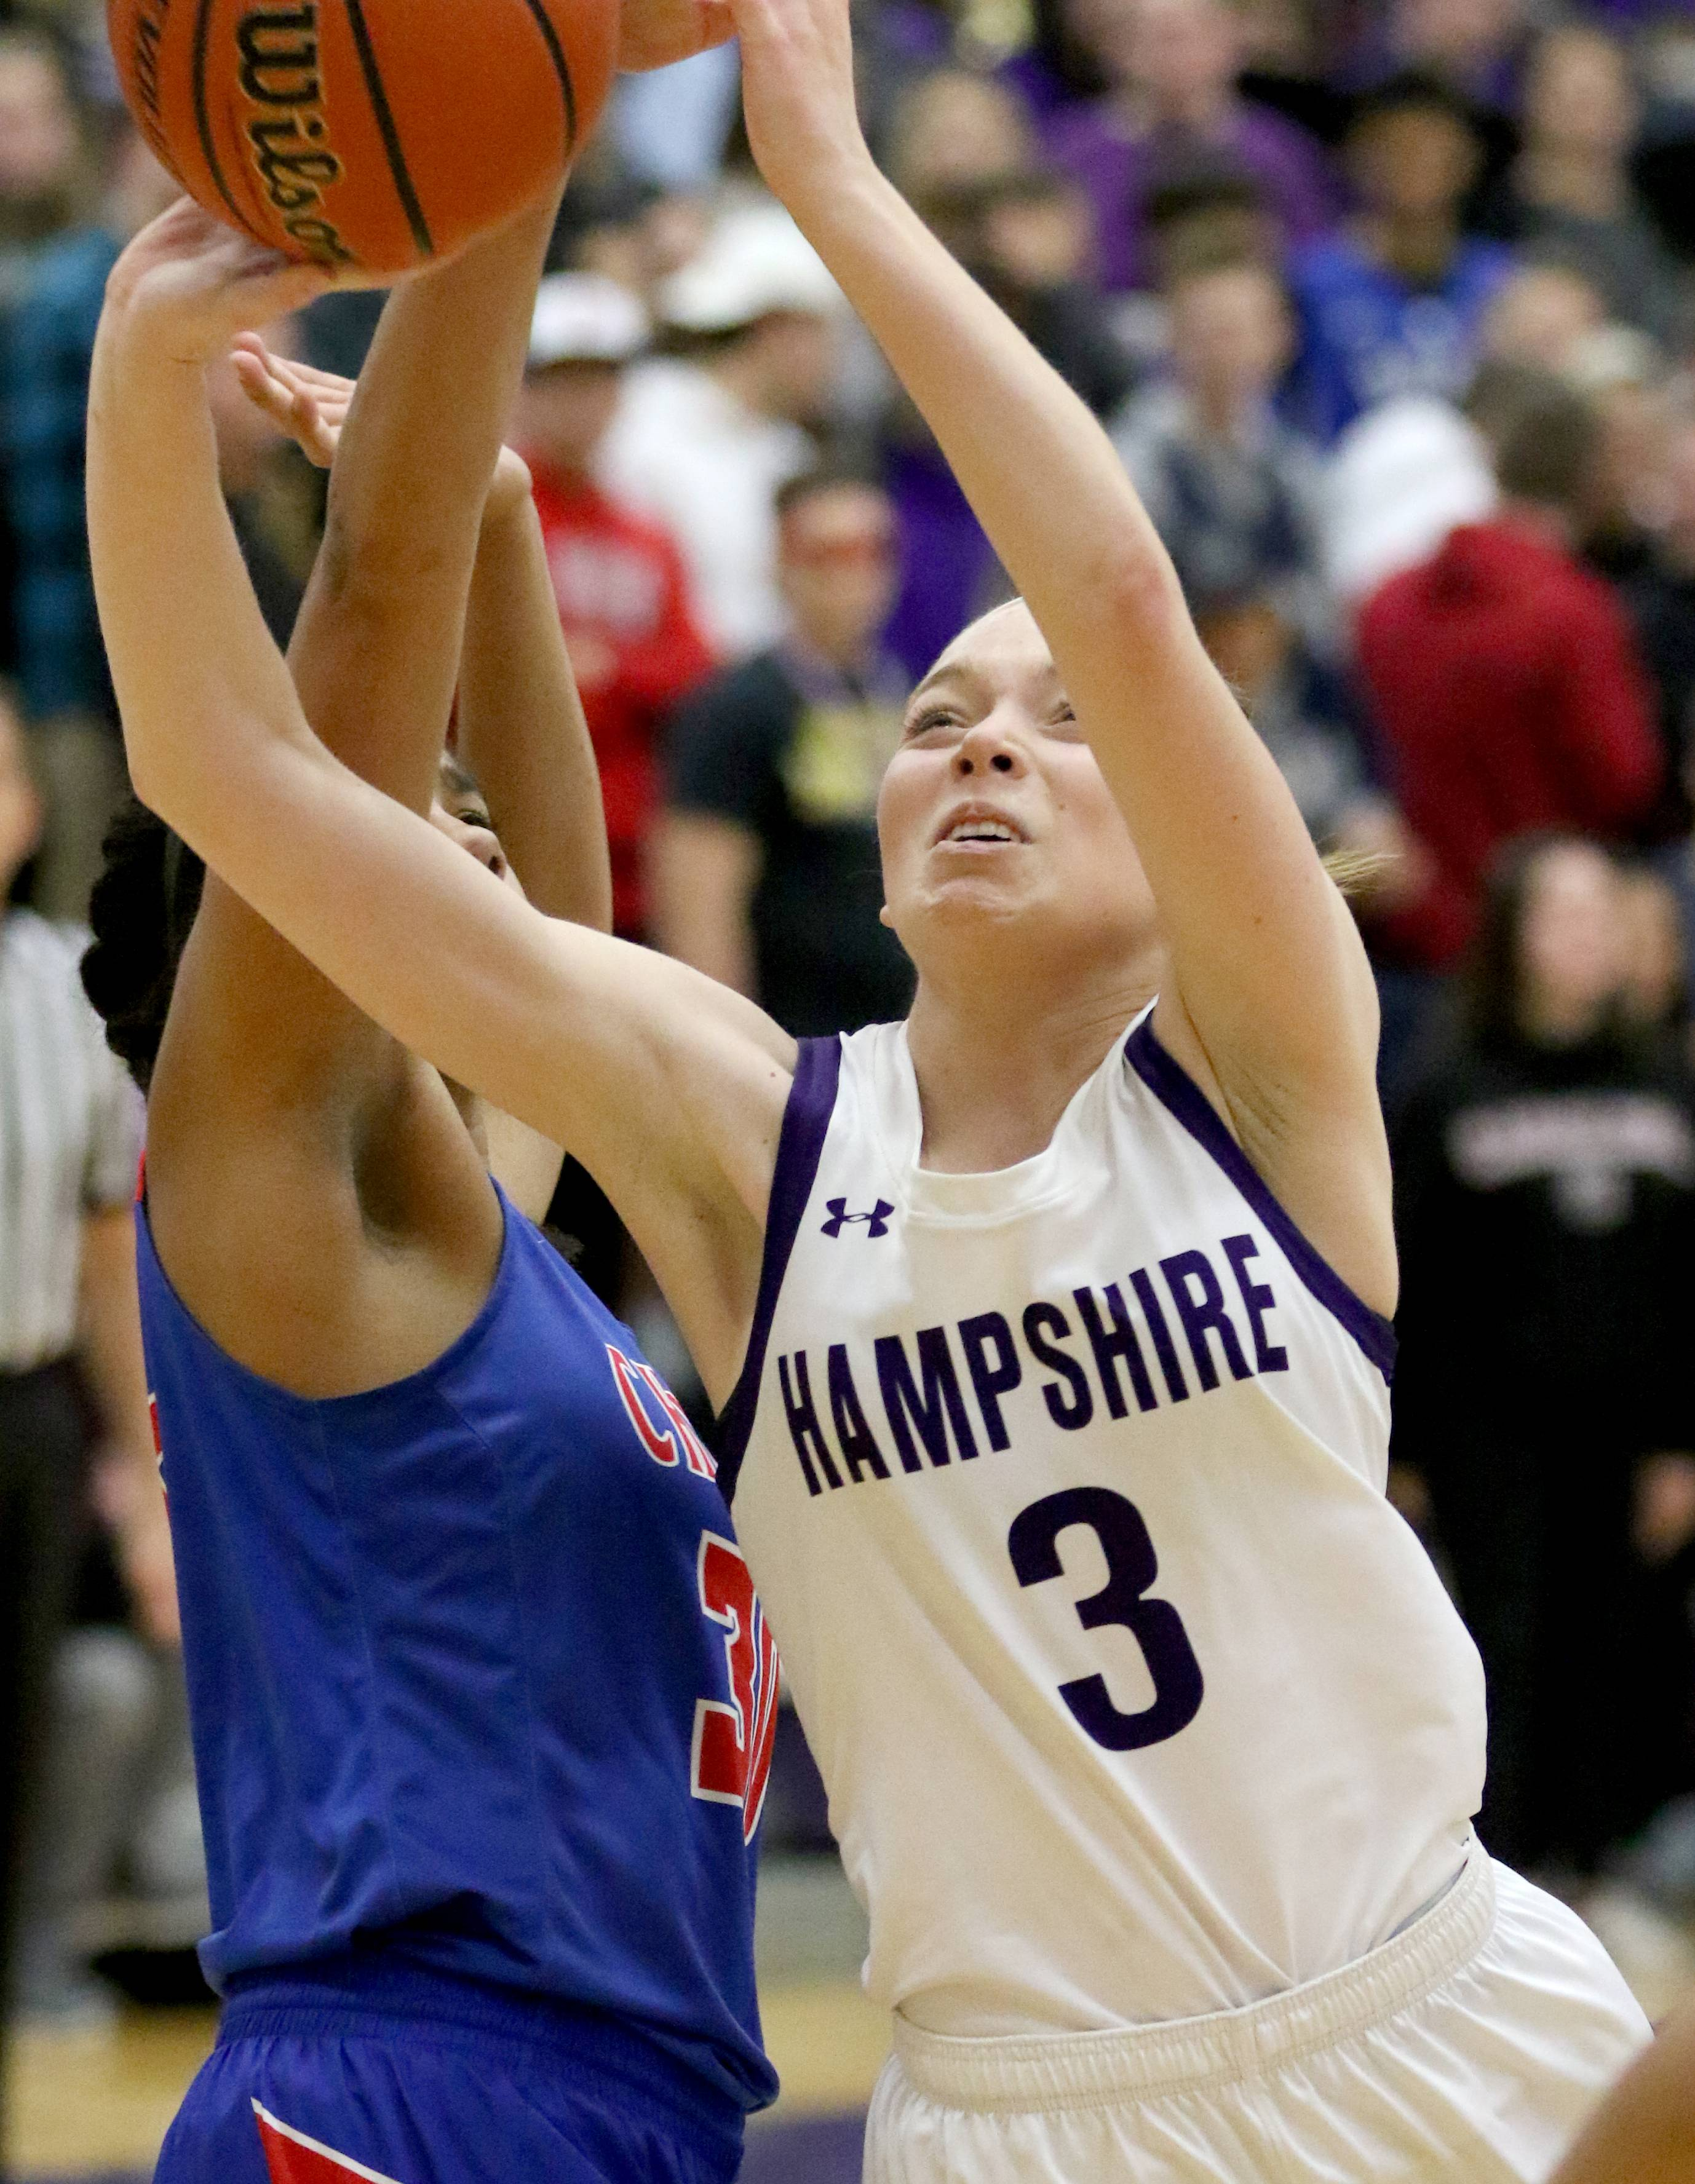 Hampshire's Ally Cermak goes to the hoop against Dundee-Crown during varsity girls basketball at Hampshire Friday night.